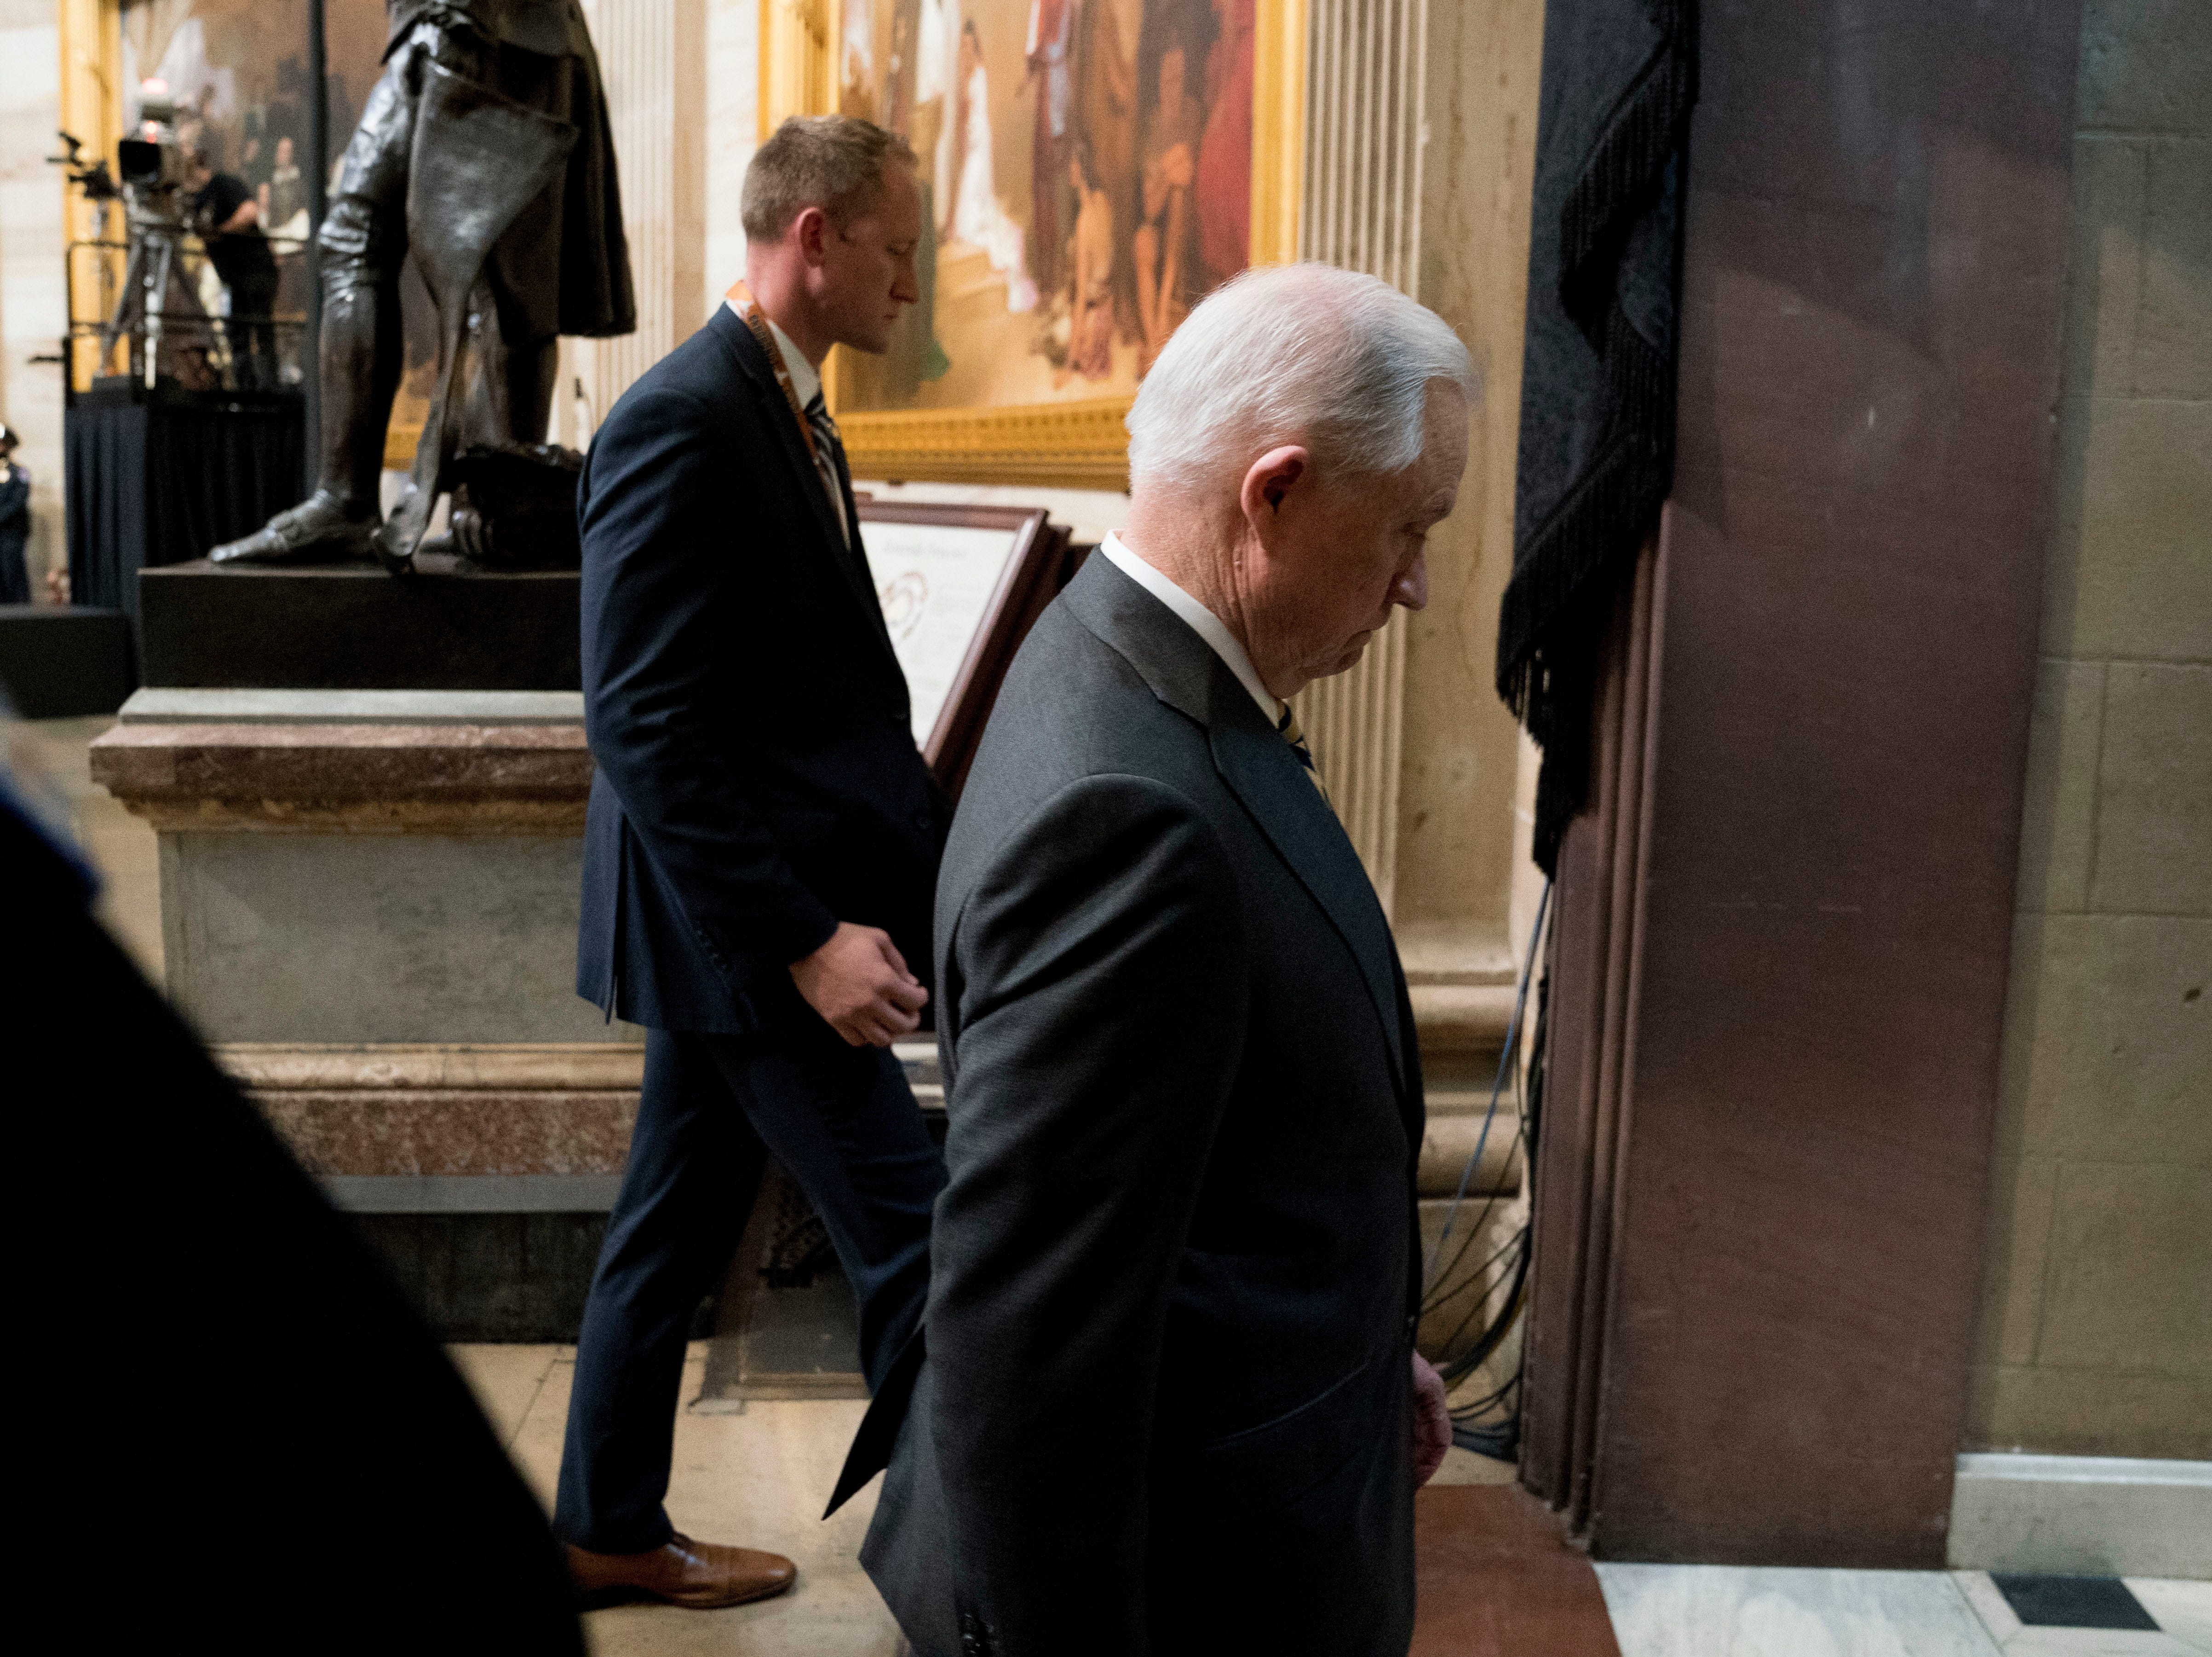 Attorney General Jeff Sessions walks out of the Rotunda where Sen. John McCain, R-Ariz., lies in state in the U.S. Capitol, Friday, Aug. 31, 2018, in Washington. (AP Photo/Andrew Harnik)